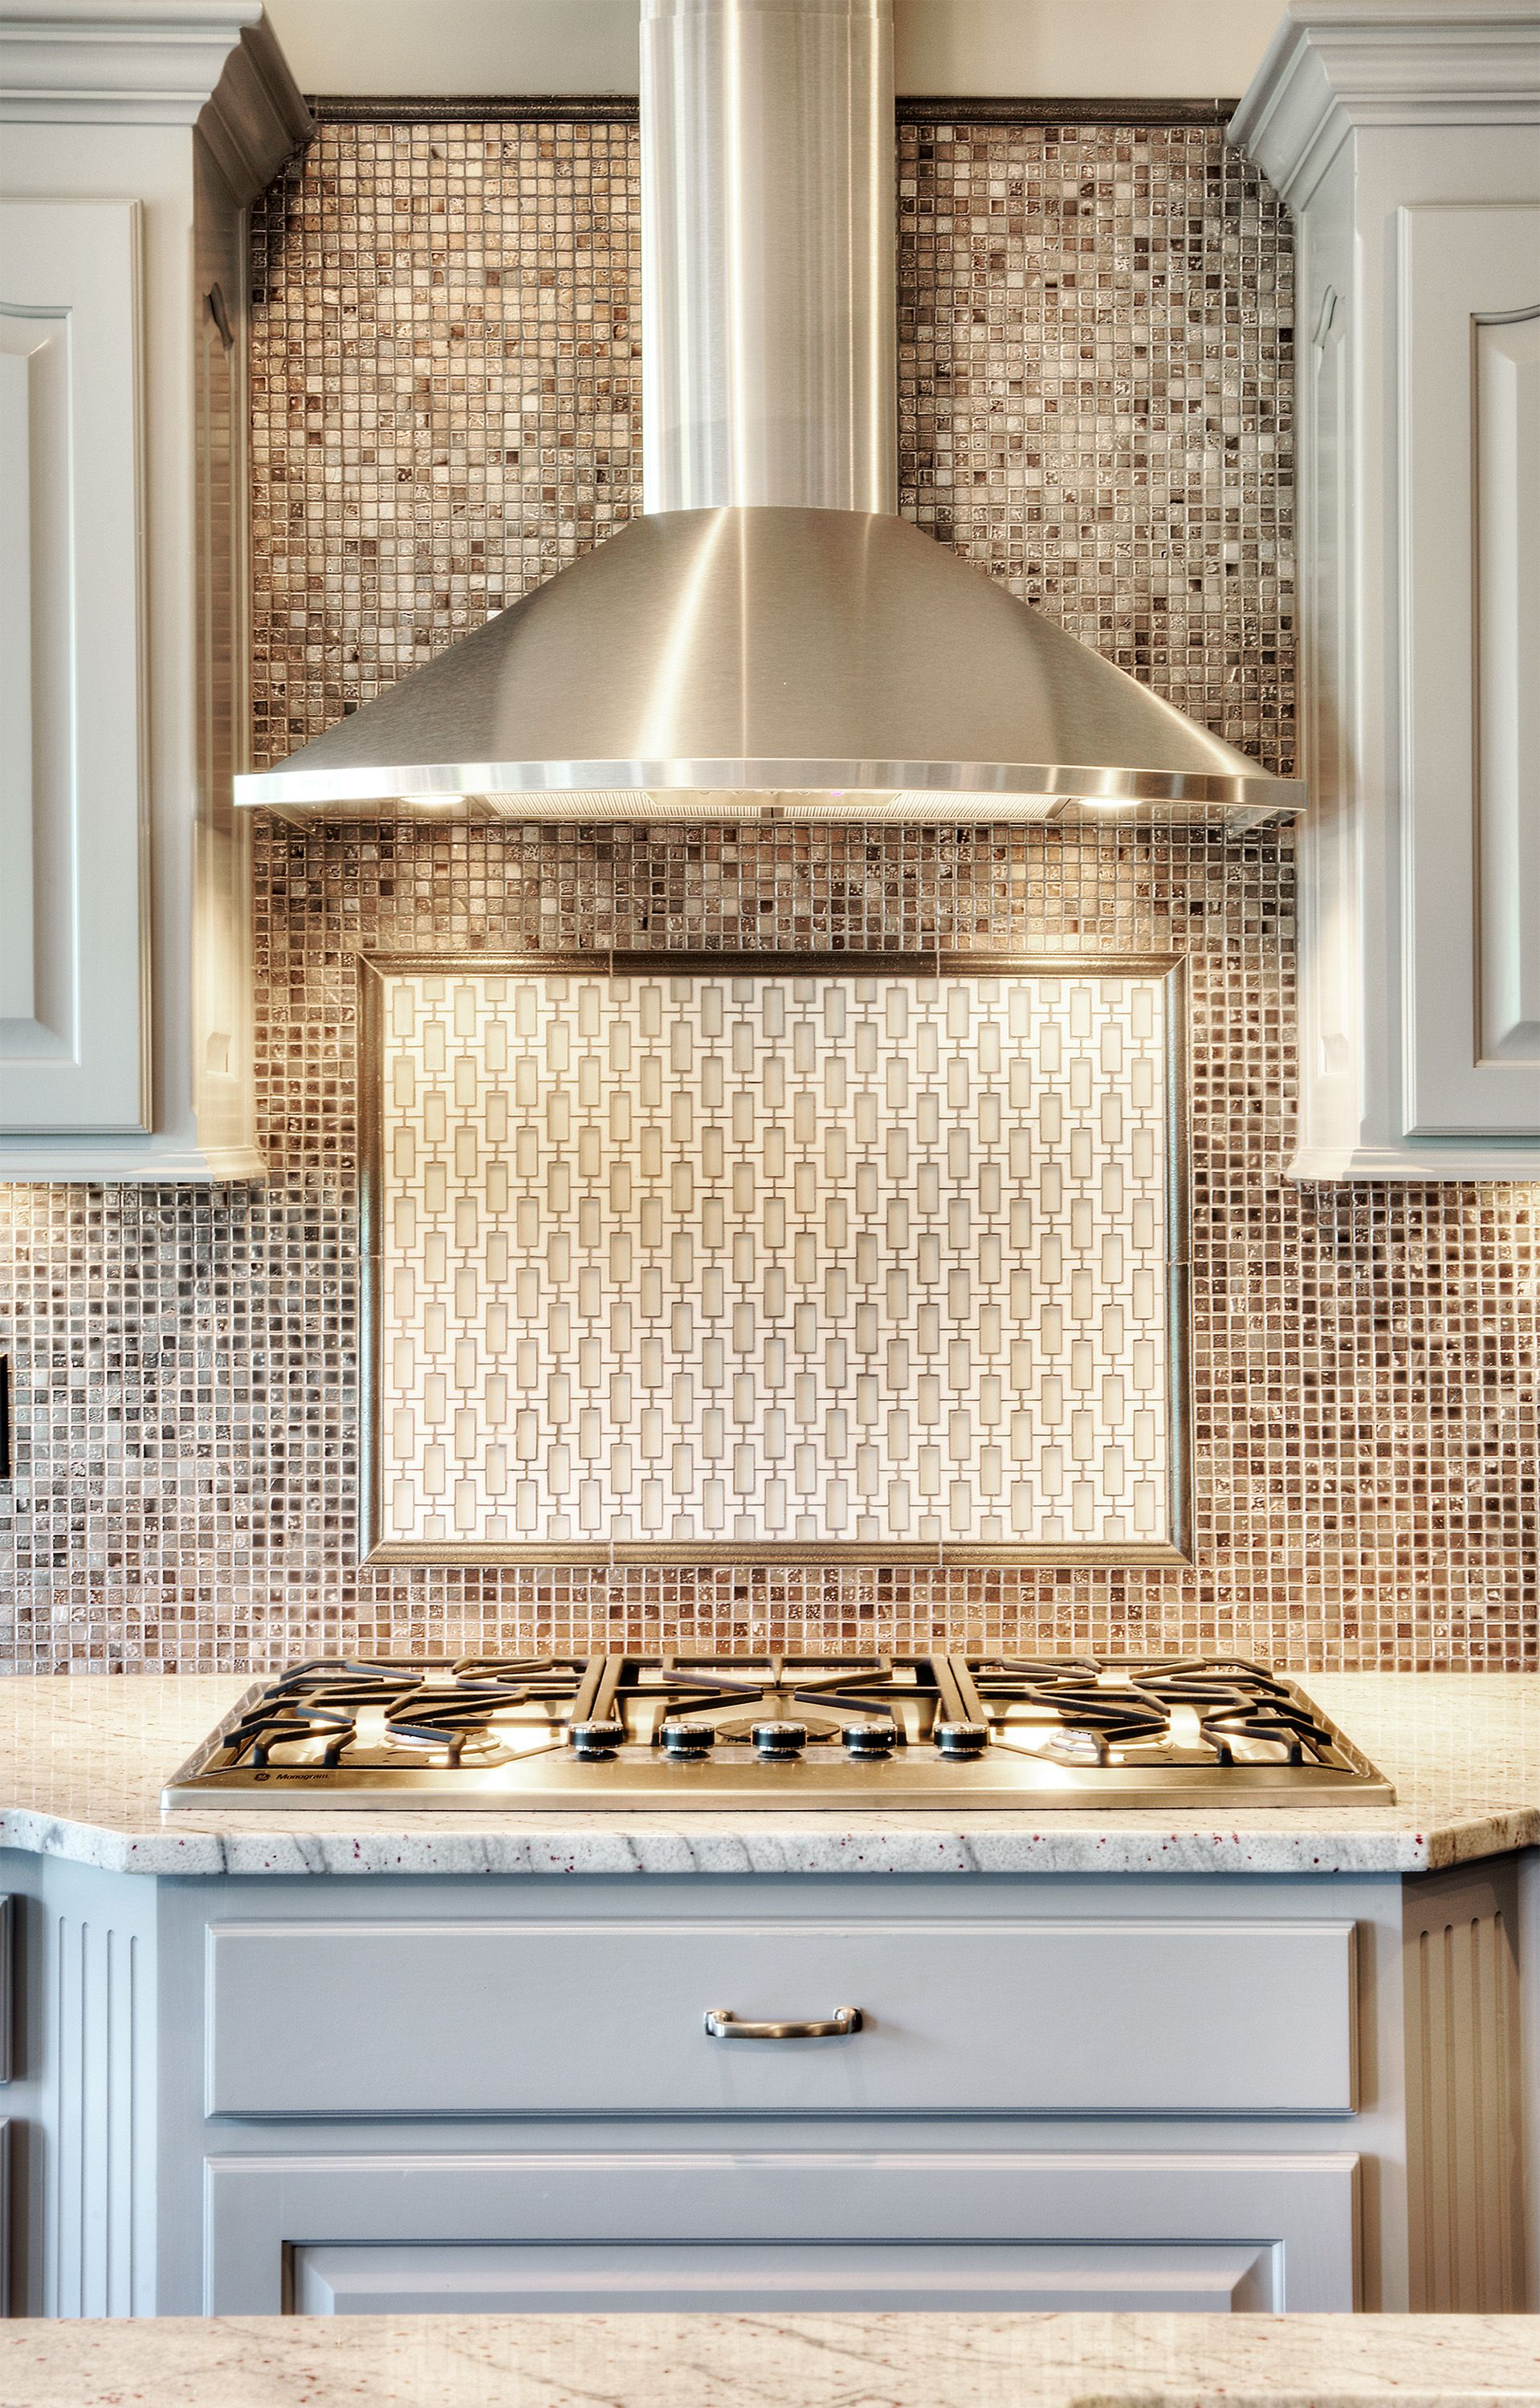 Chrome Stainless Steel Vent Hood Painted Kitchen Cabinets Mosaic Unique Kitchen Vent Hood Design Ideas